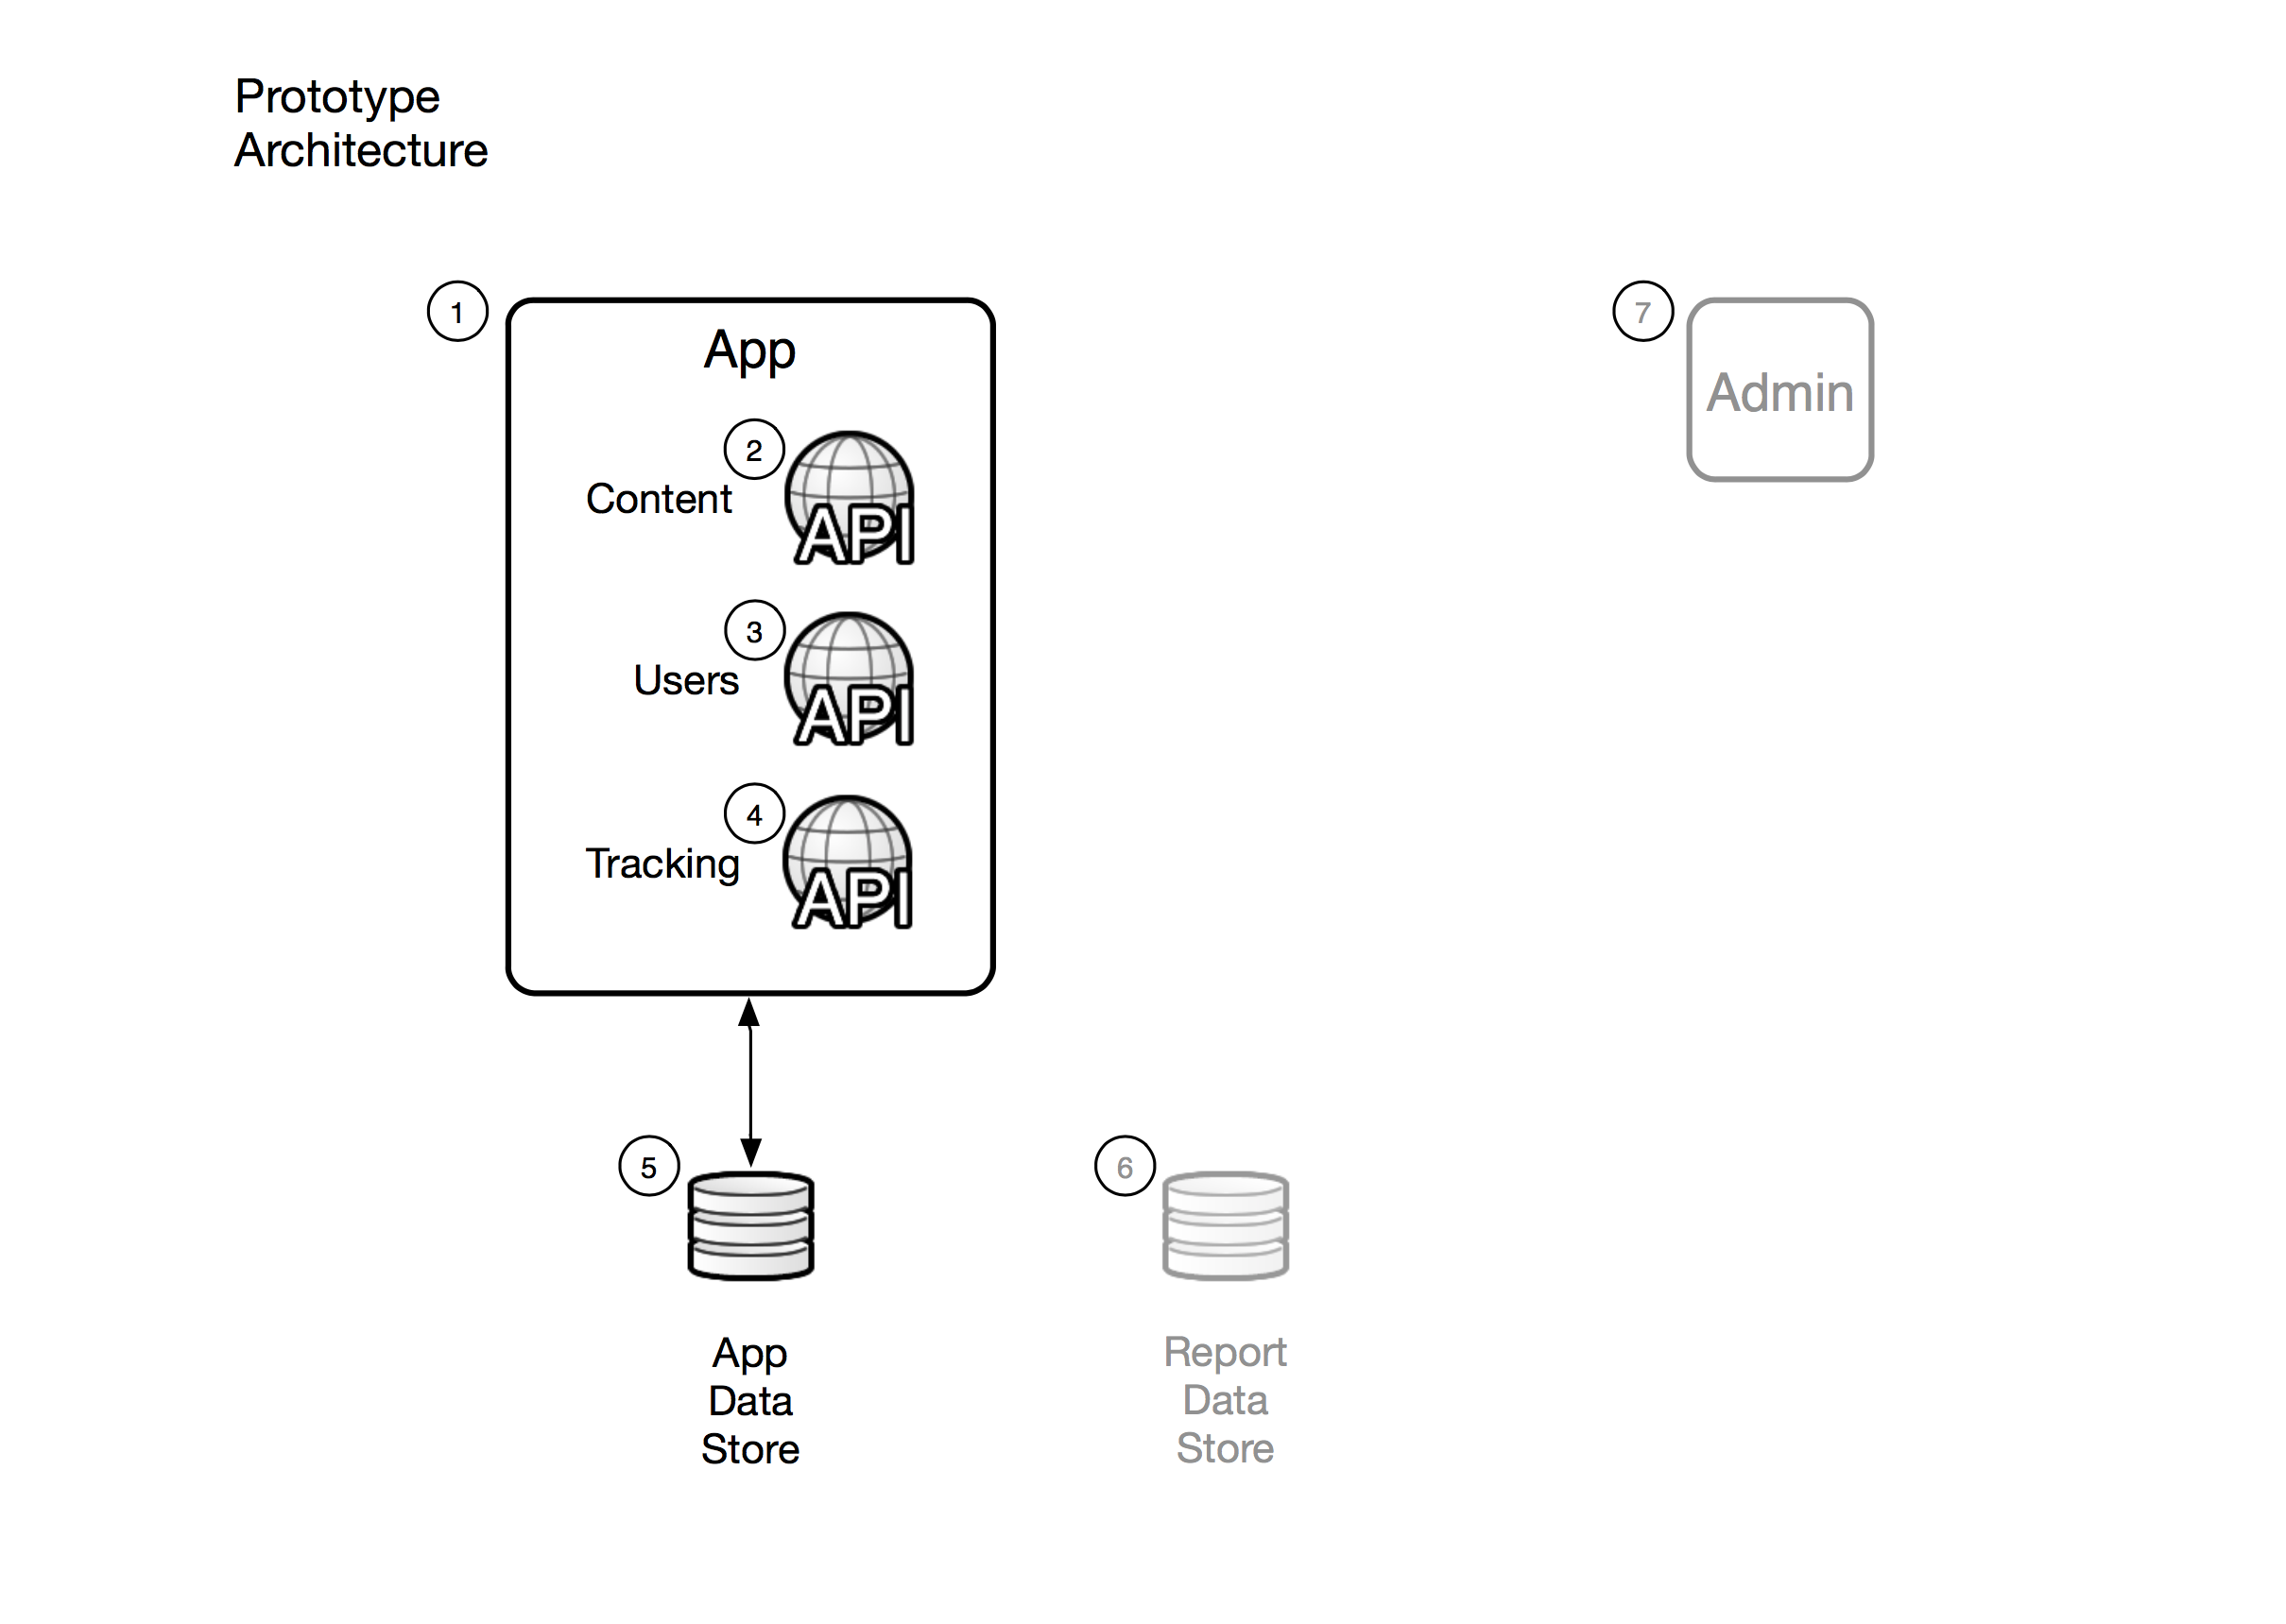 Simplified prototype application architecture